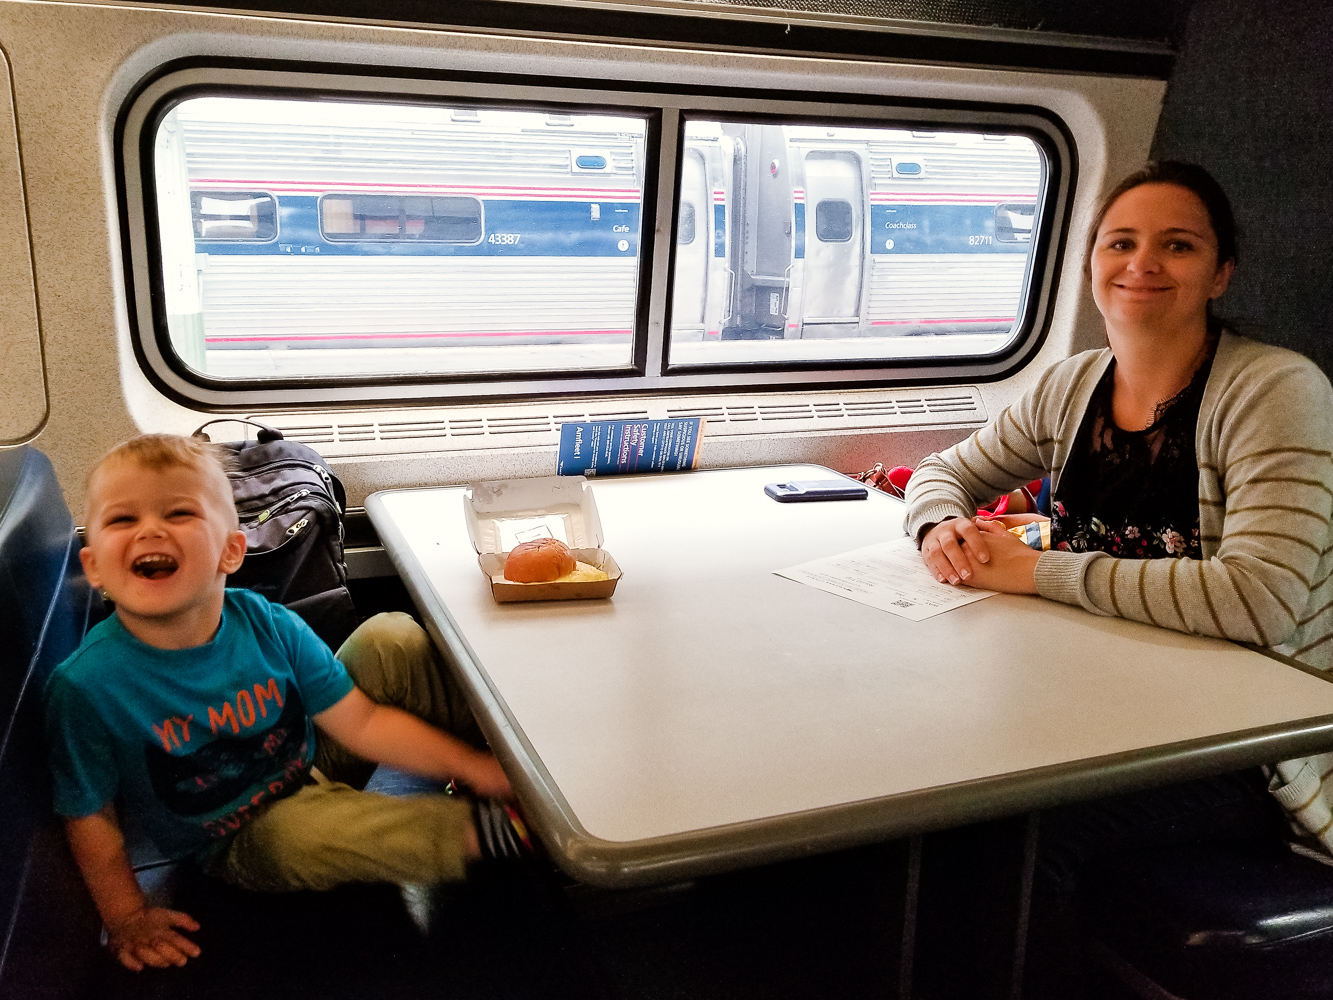 Train travel with a toddler_toddler on a train